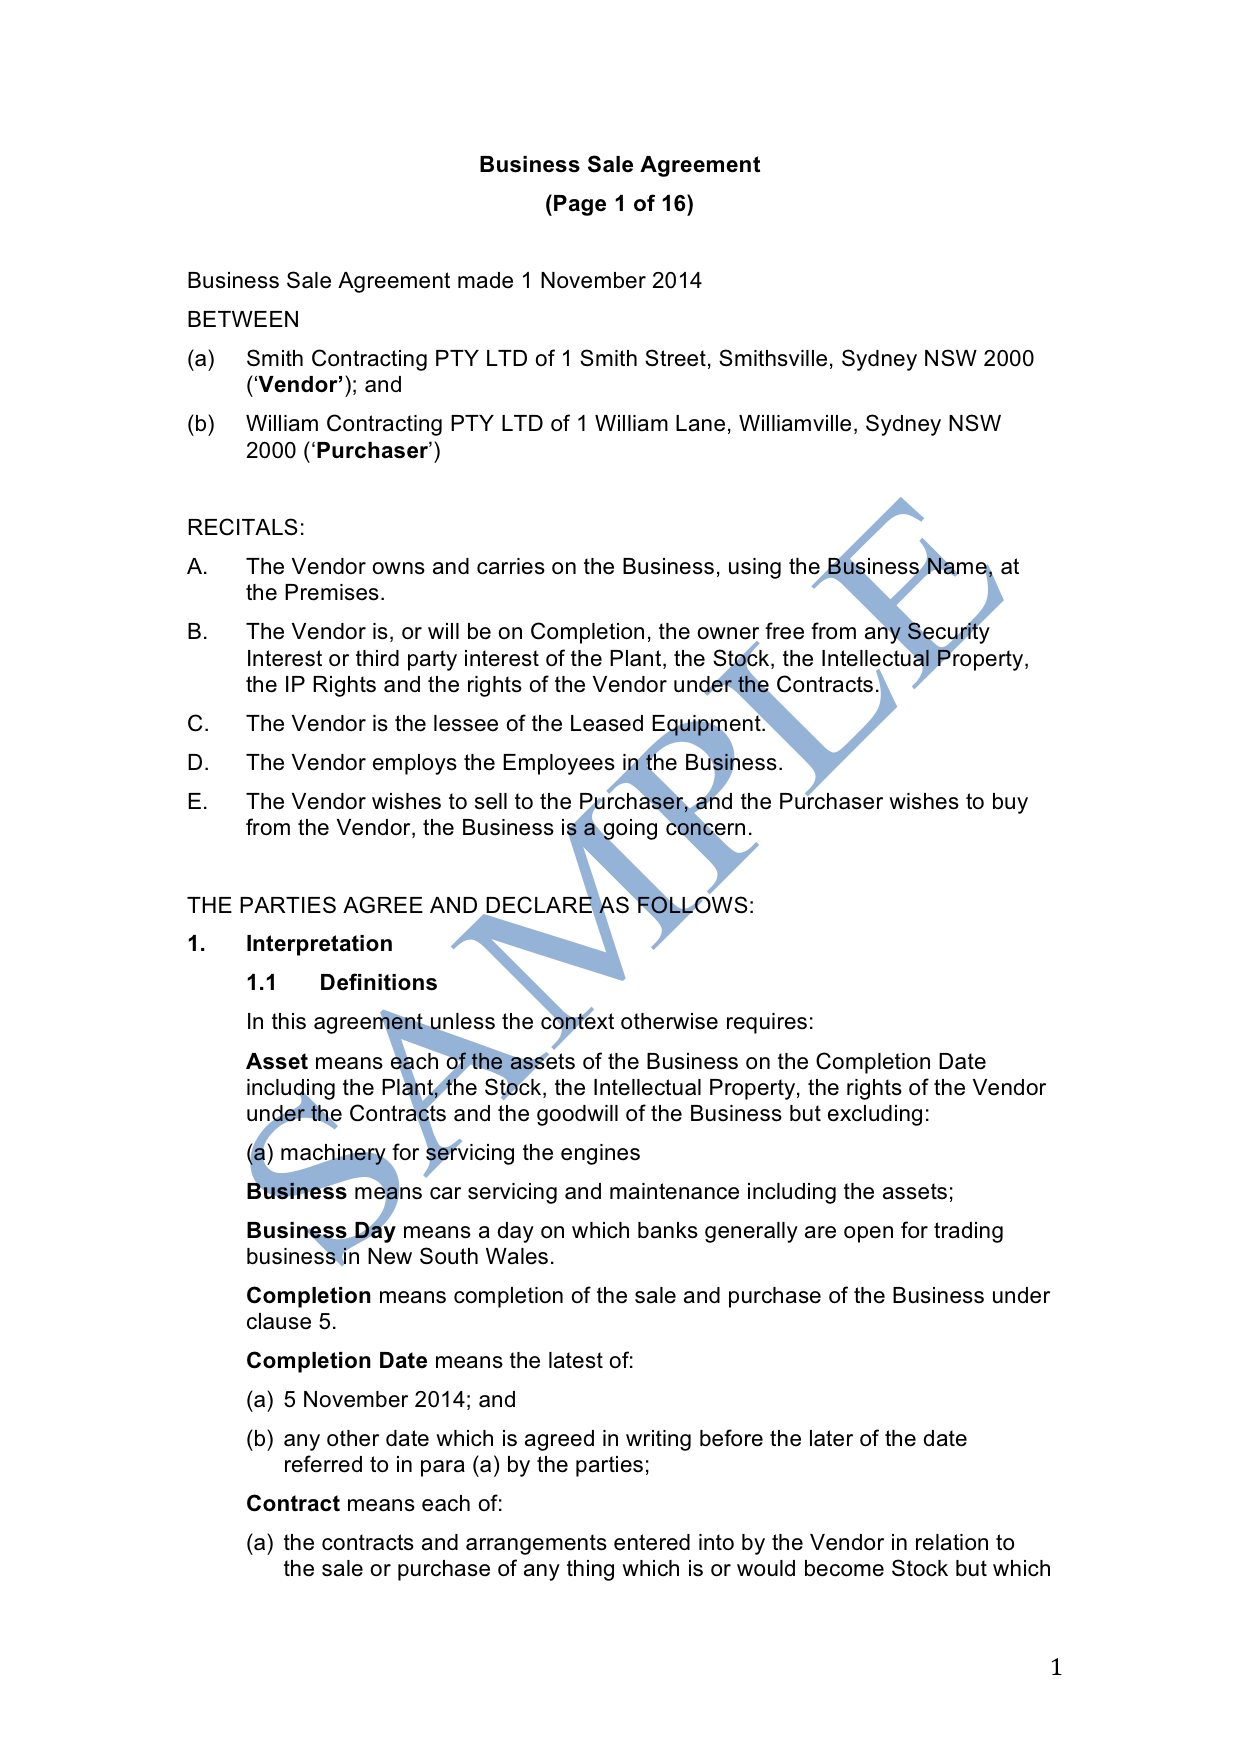 Business Sale Agreement Sample LawPath – Sale of Business Agreement